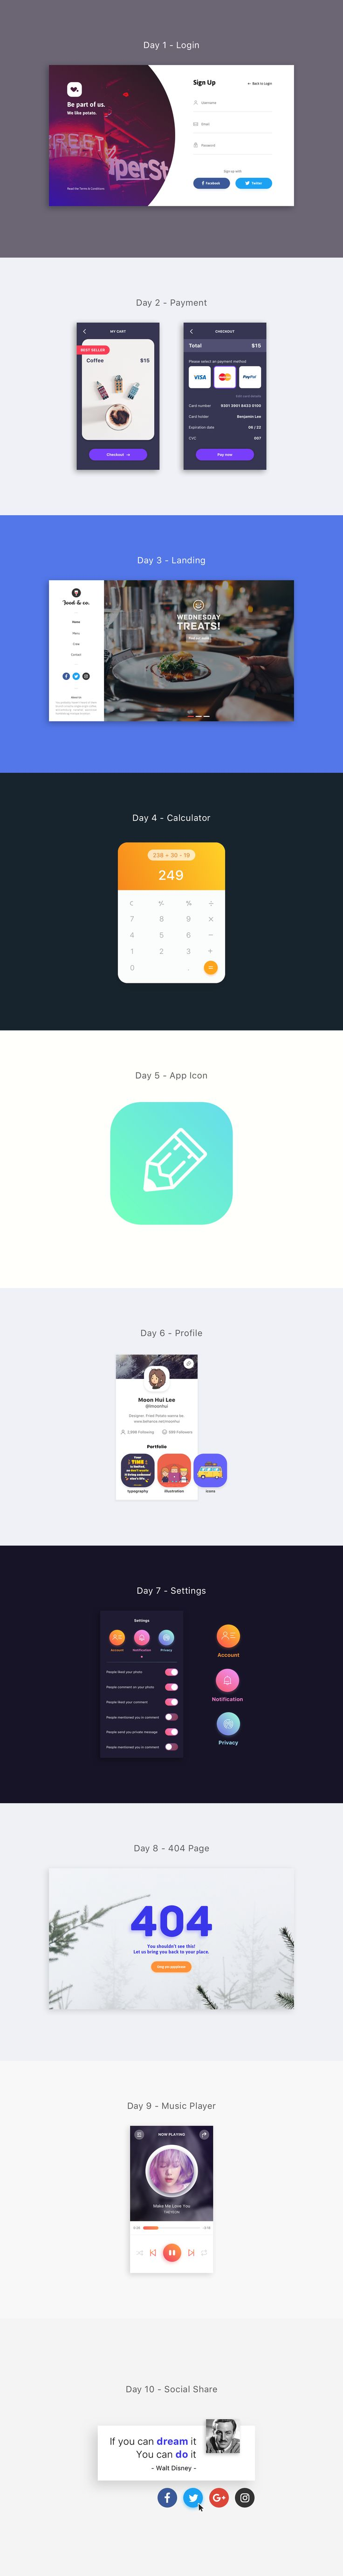 DAILY UI : DAY 1 TO 10